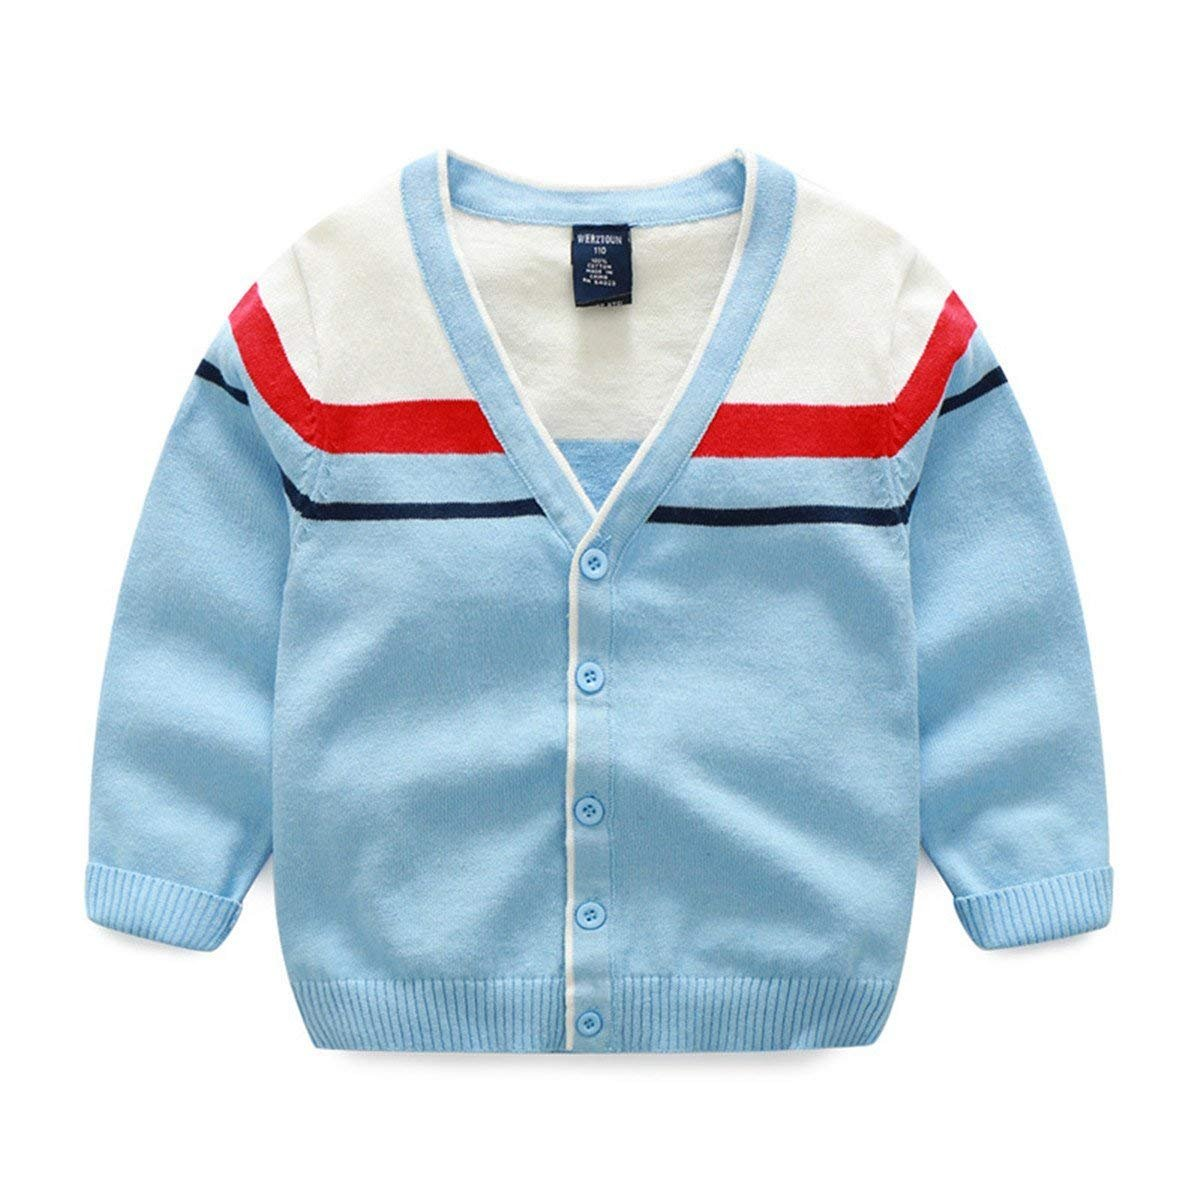 Maylife Baby Boys Basic Long Sleeve V-Neck Casual Cotton Striped Button Front Cardigan Sweater